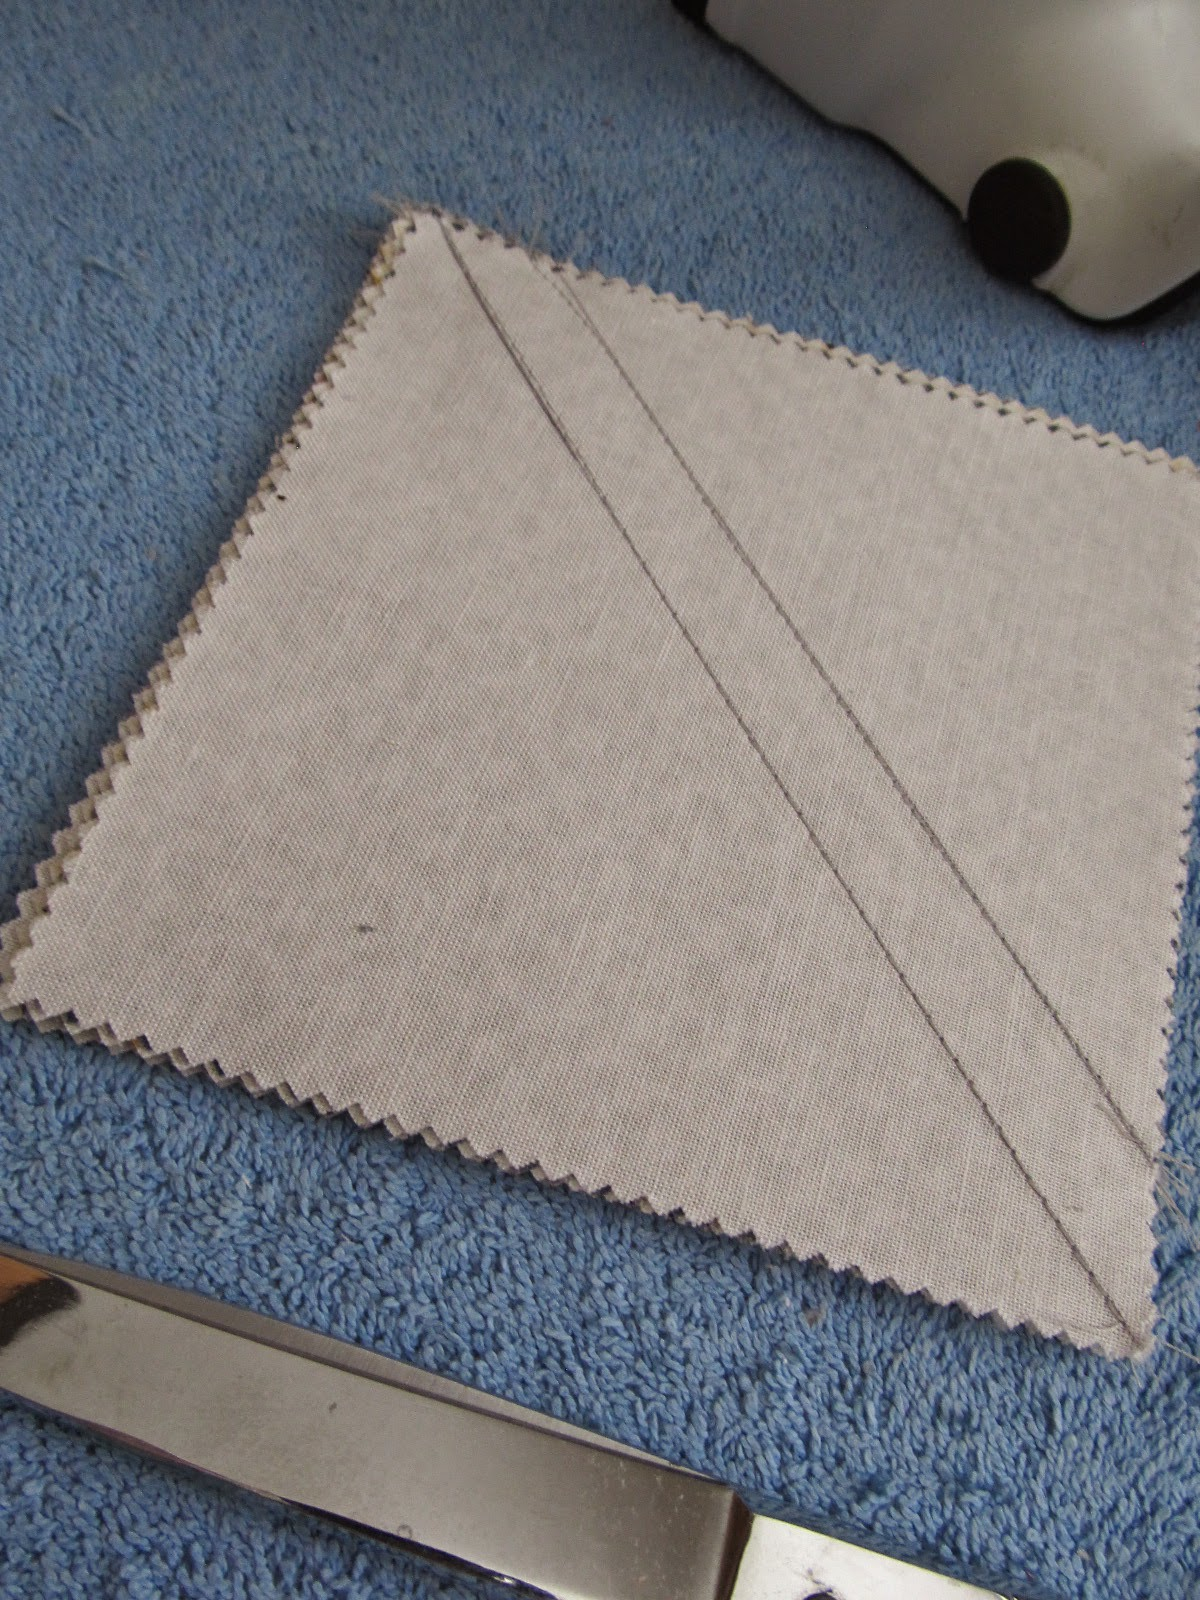 Charm quilt piecing of 2 different sizes of triangles from on quilt square